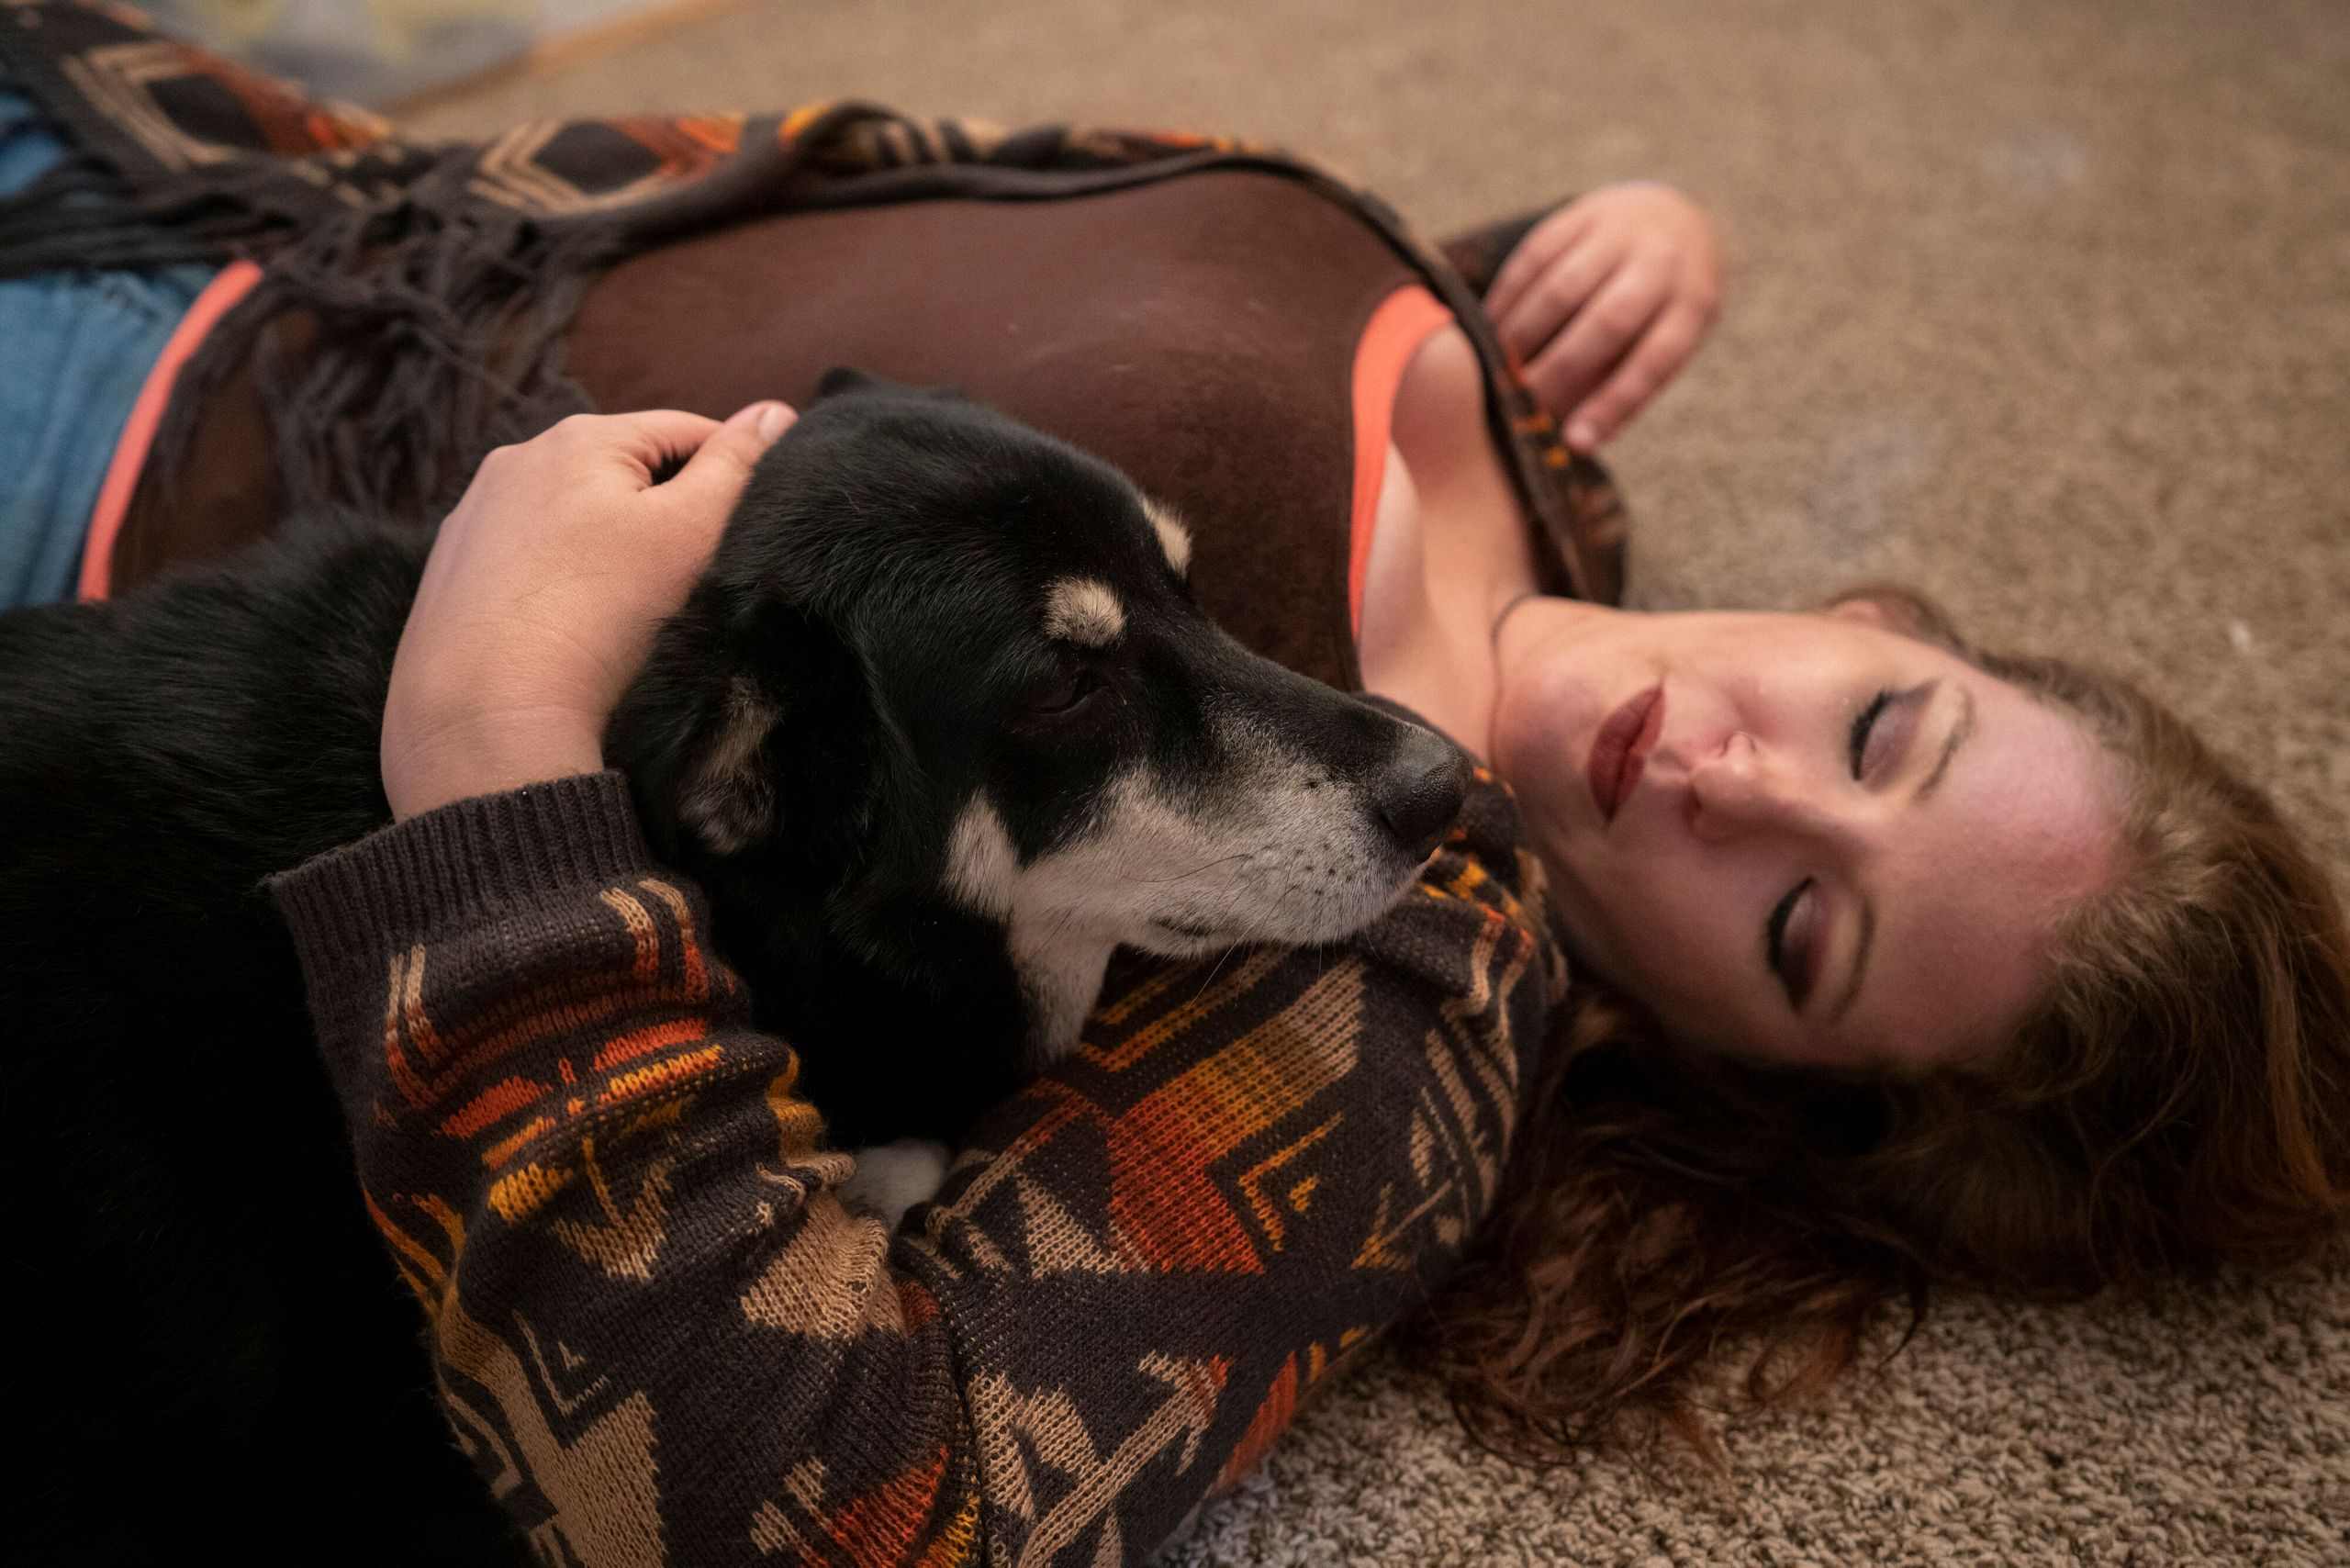 Tamara Campbell says that her dog, Bandit, is her protector. She said once, when her ex-husband had cocked his arm back to hi